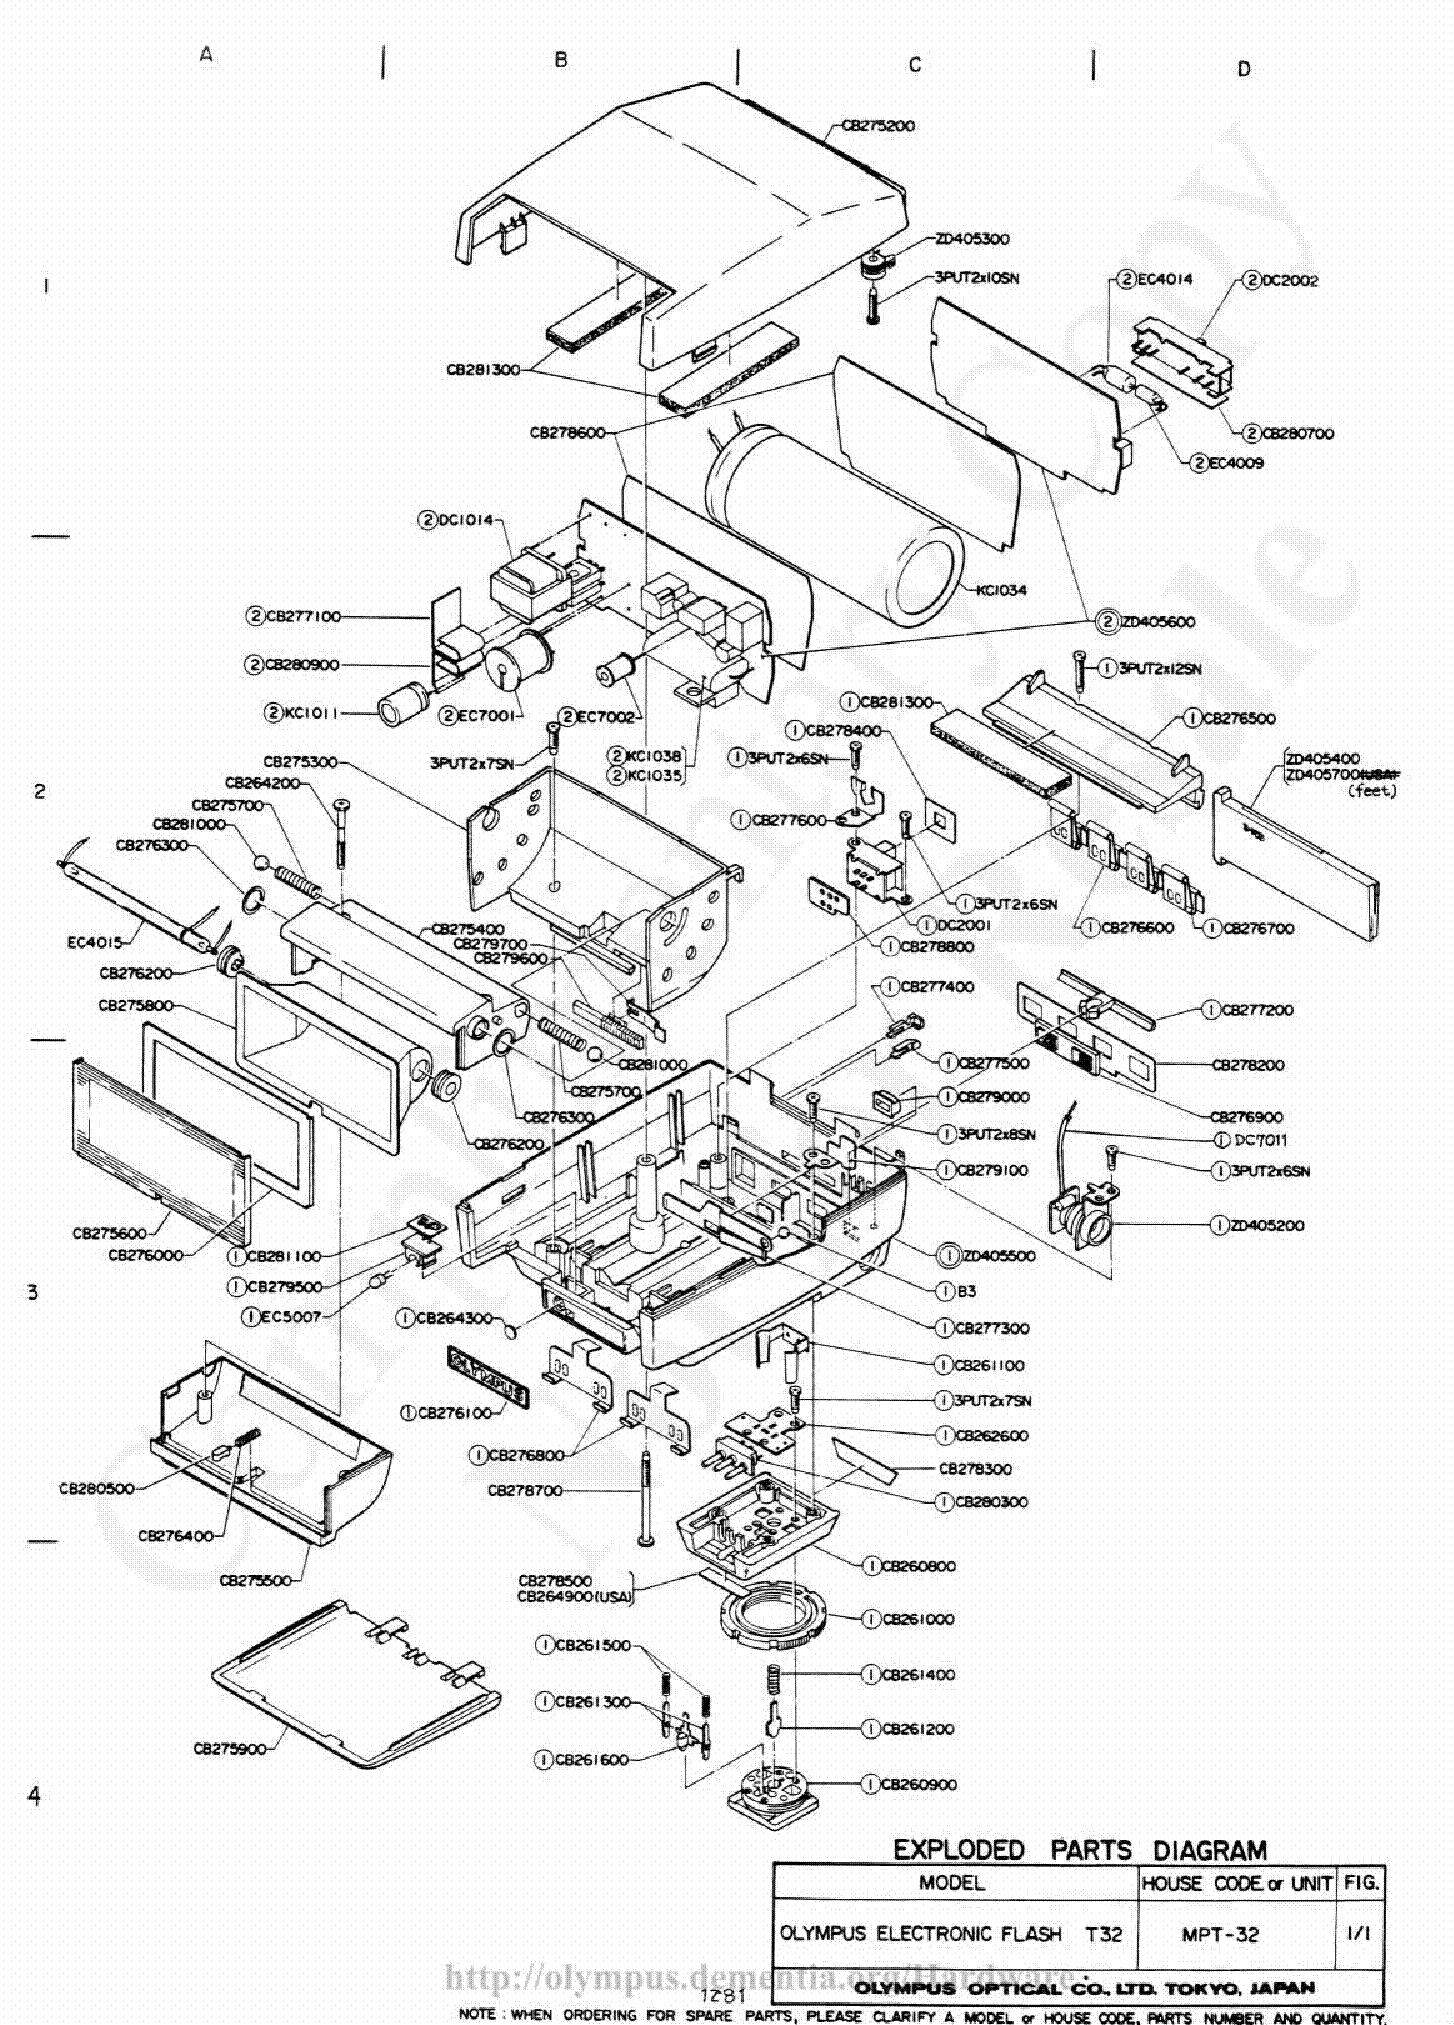 Ar 15 Exploded View Pdf Pictures To Pin